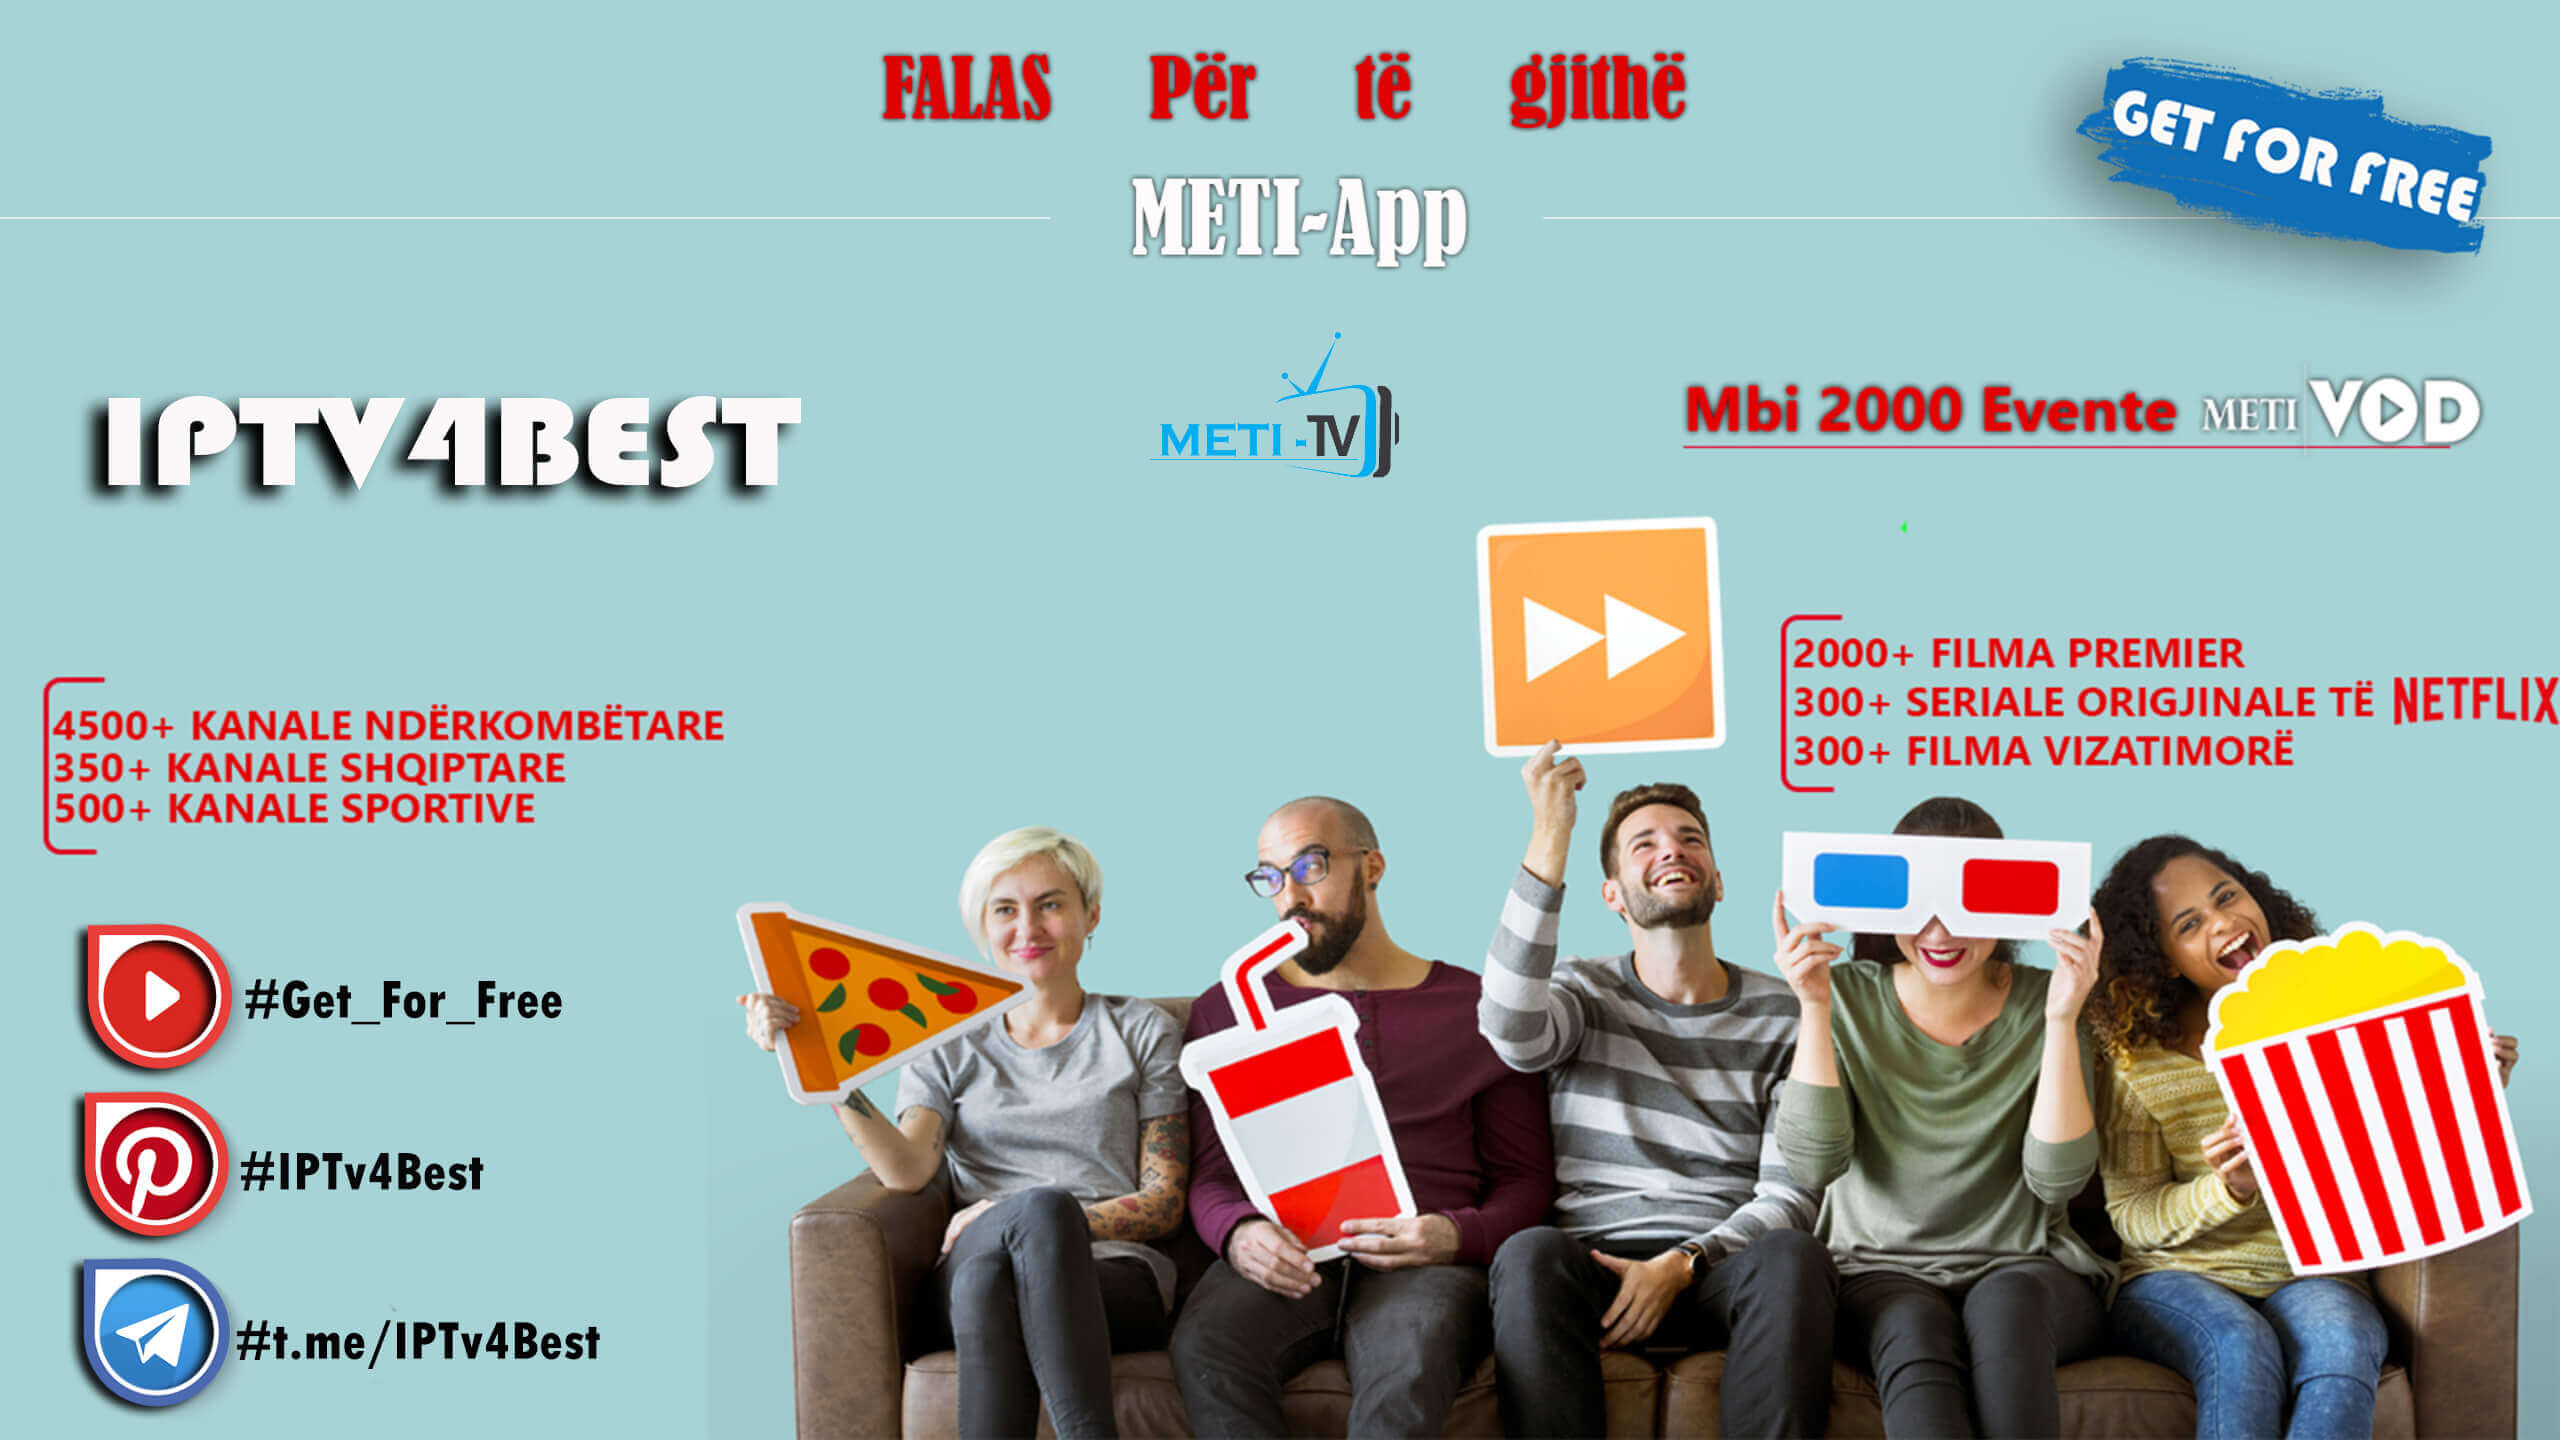 MetiTv APK + Activation Code 1 Year For Free IPTv APK By IPTV4BEST